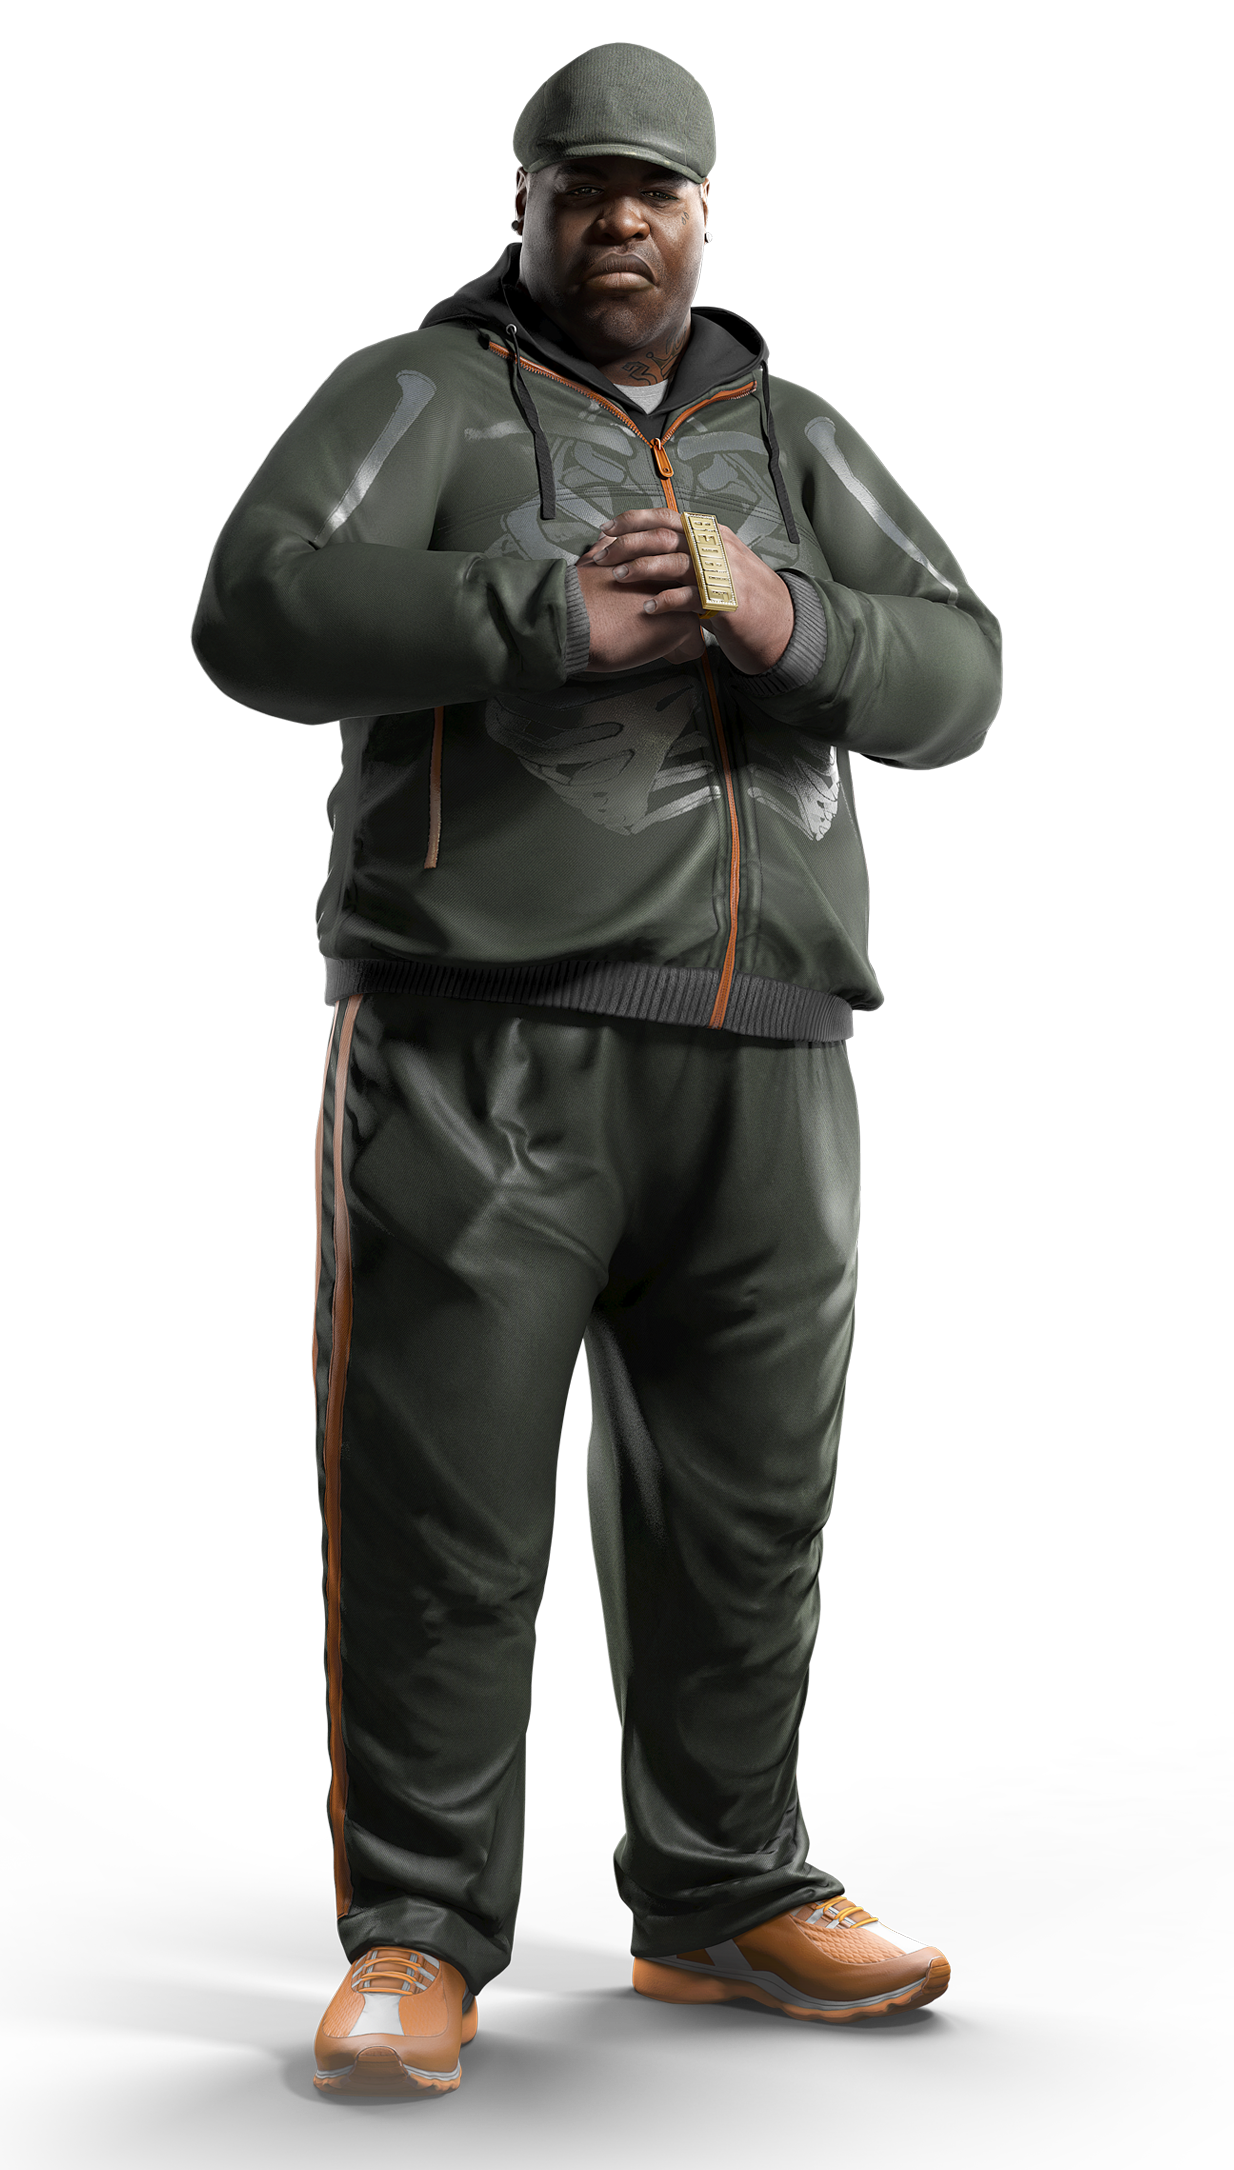 Watch_dogs png bedbug. Image watch dogs wiki